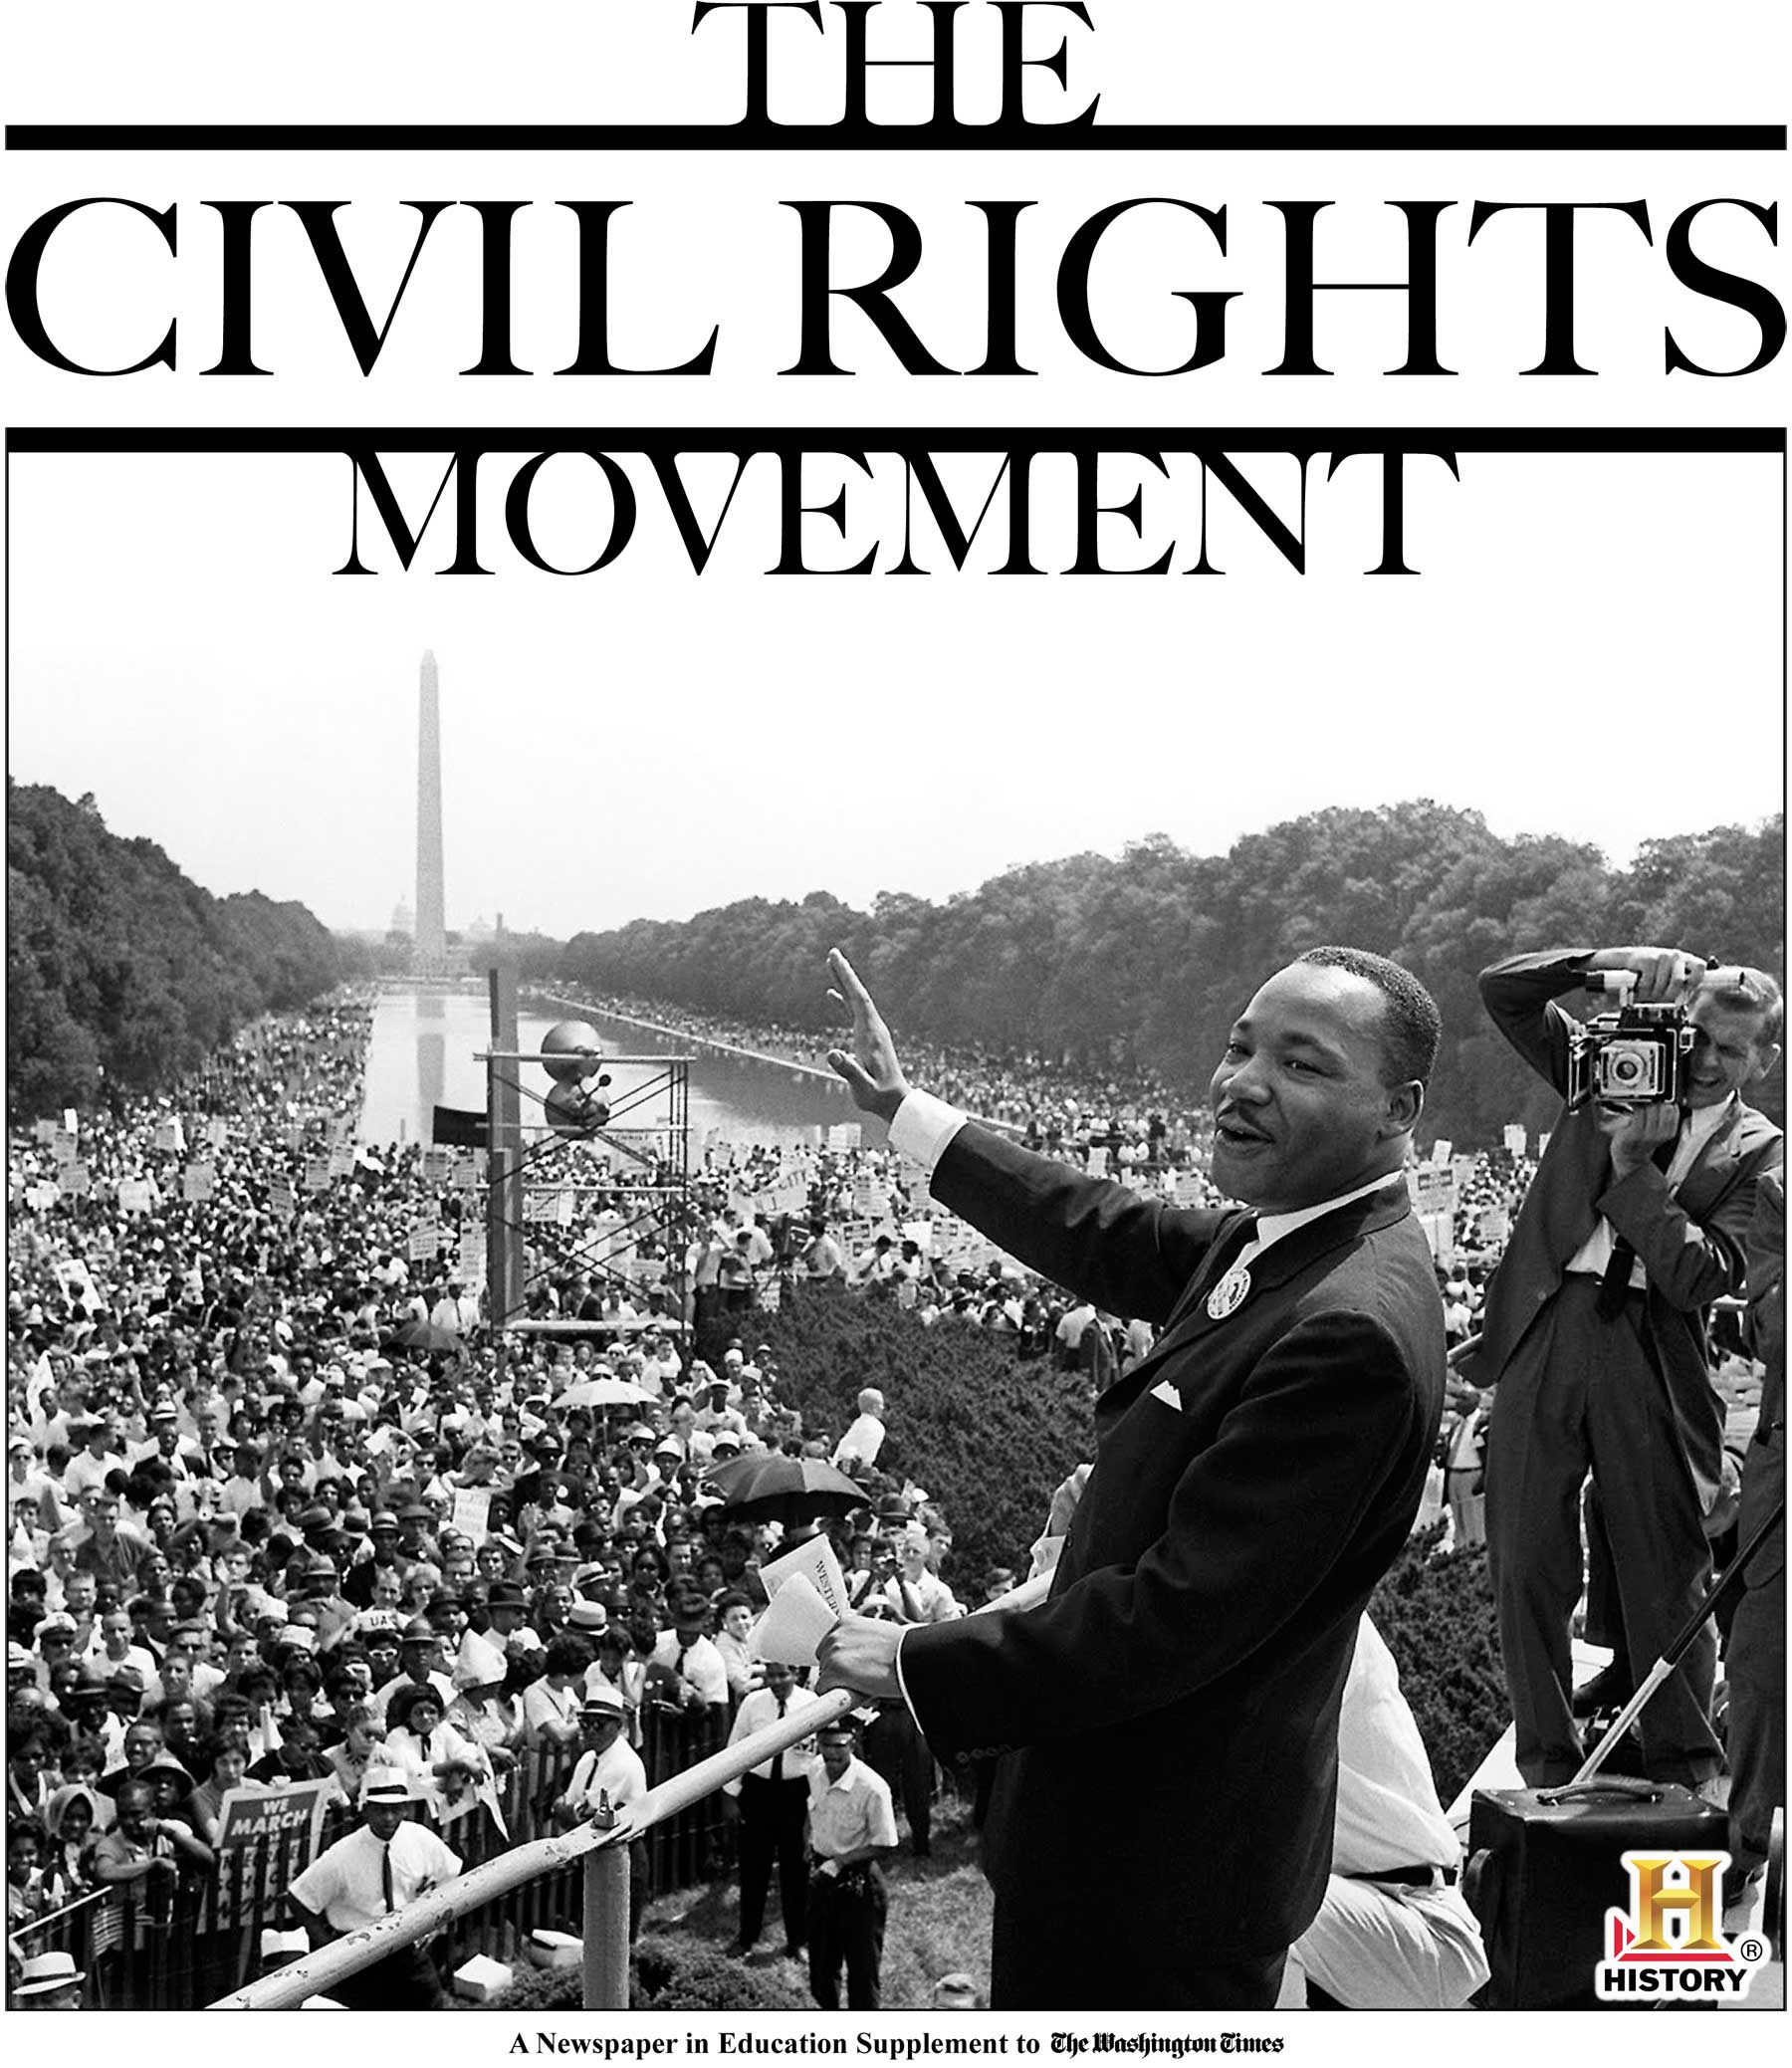 the relationship between activism and federal government during the civil rights movement